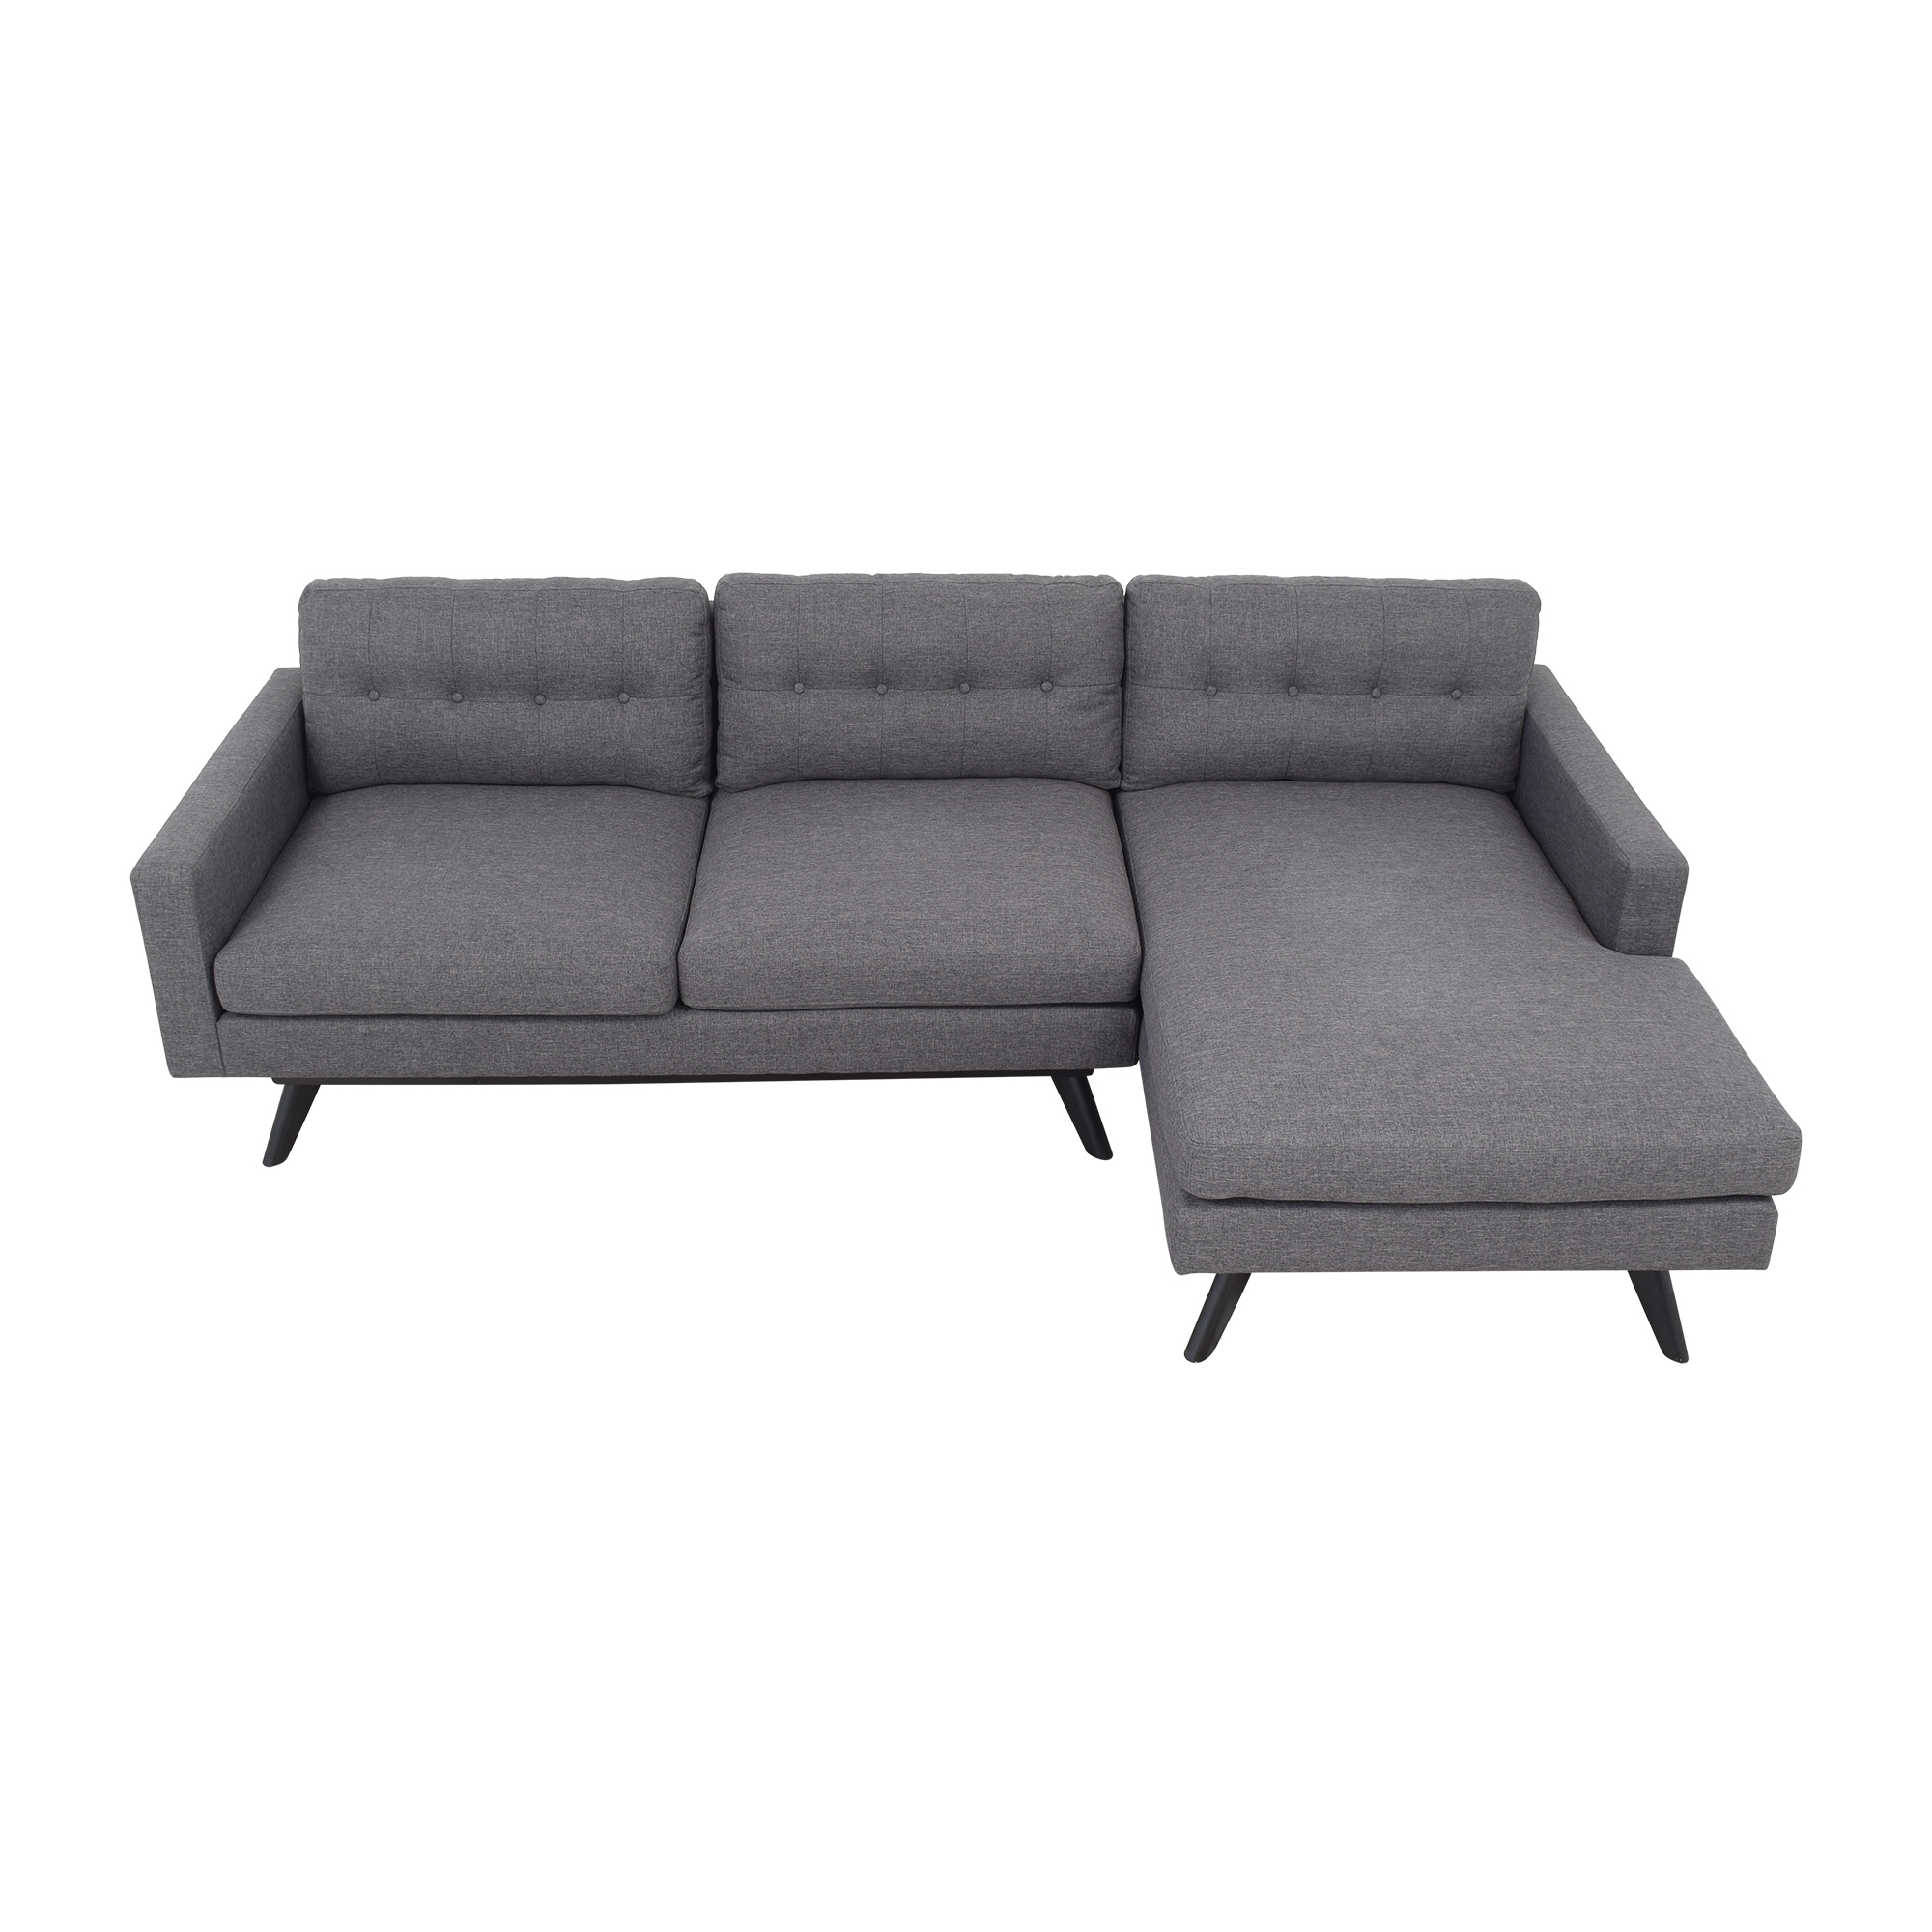 44 off mid century modern chaise sectional sofa sofas